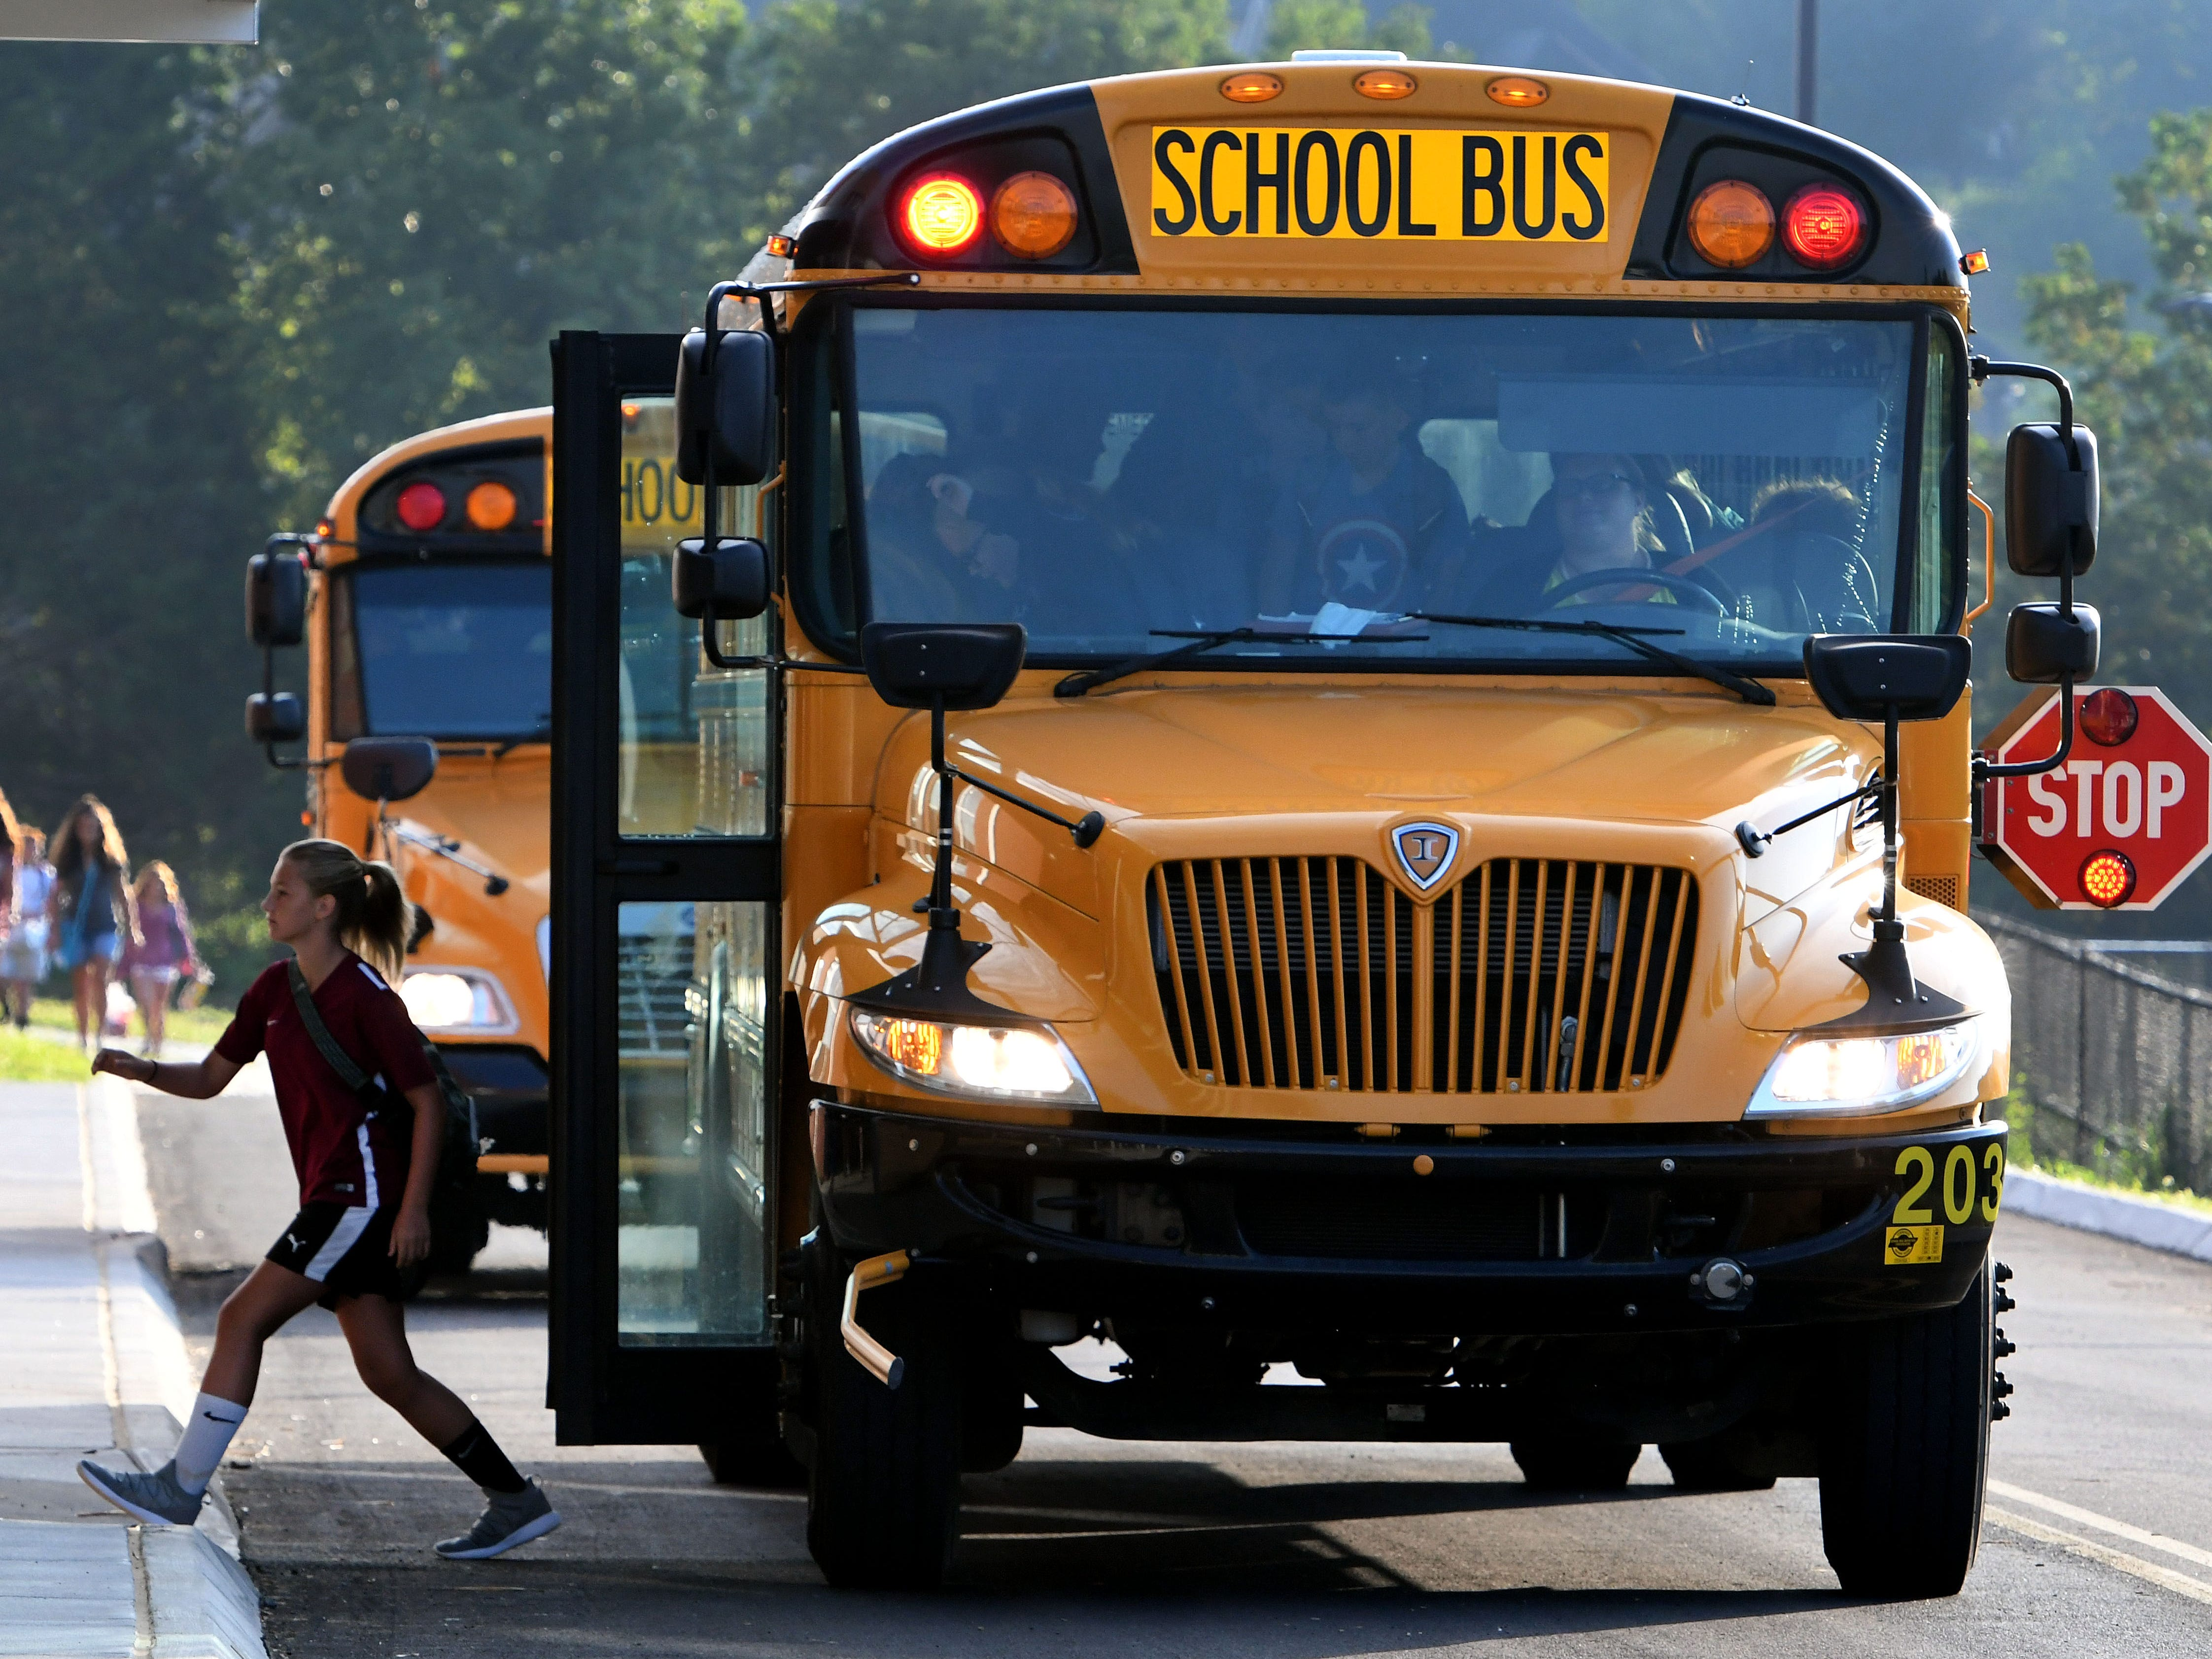 Students arriving by bus for the first day of school at Hardin Valley Middle School Wednesday, August 8, 2018. Principal Cory Smith directed teachers and students to a smooth opening for the new school.